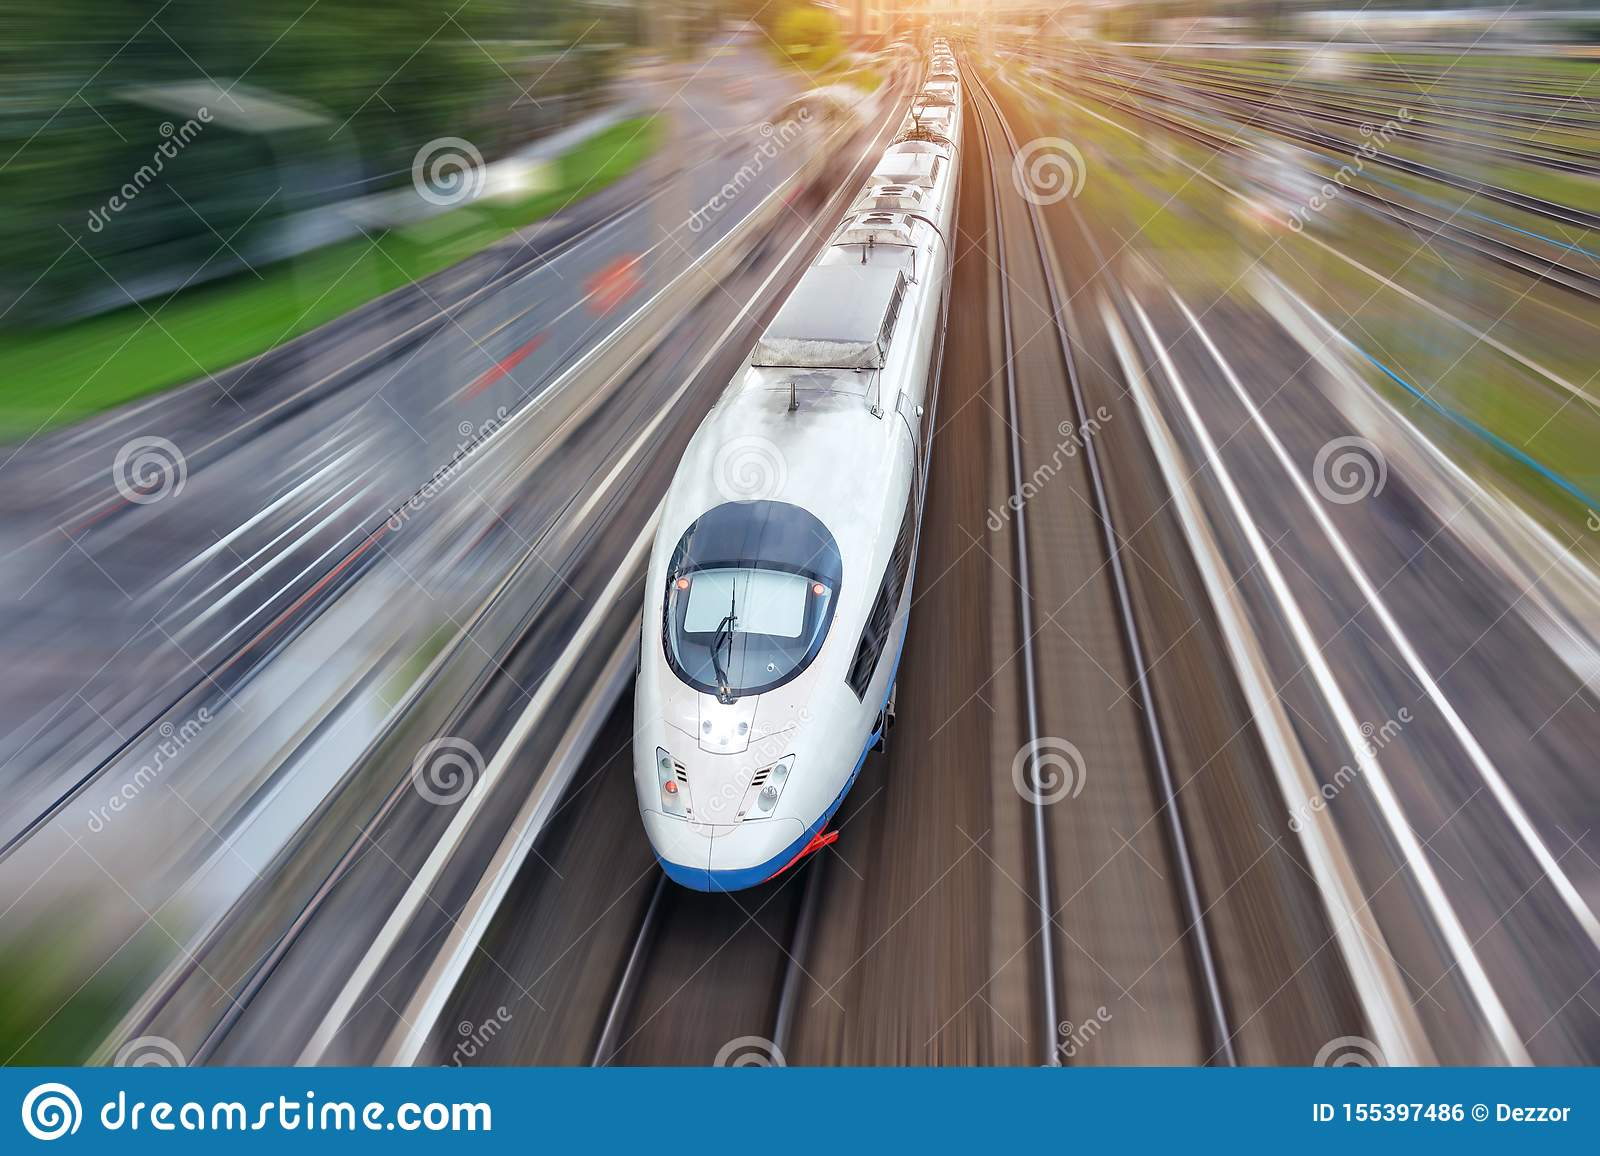 Railroad travel high speed fast train passenger locomotive motion blur effect in the city, top aerial view from above